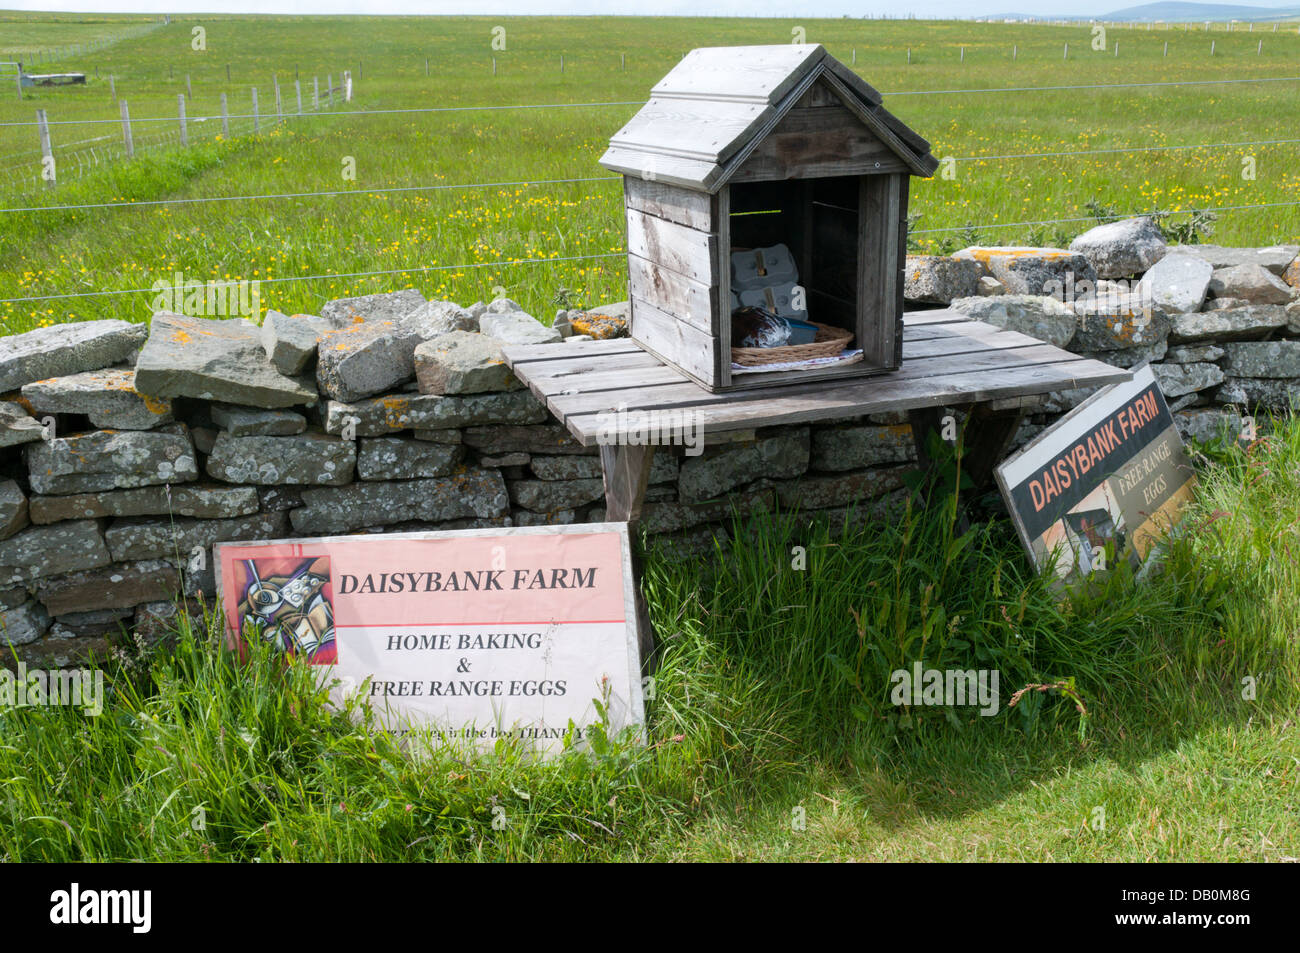 Farm produce for sale beside a footpath with an honesty box for payment. Stock Photo